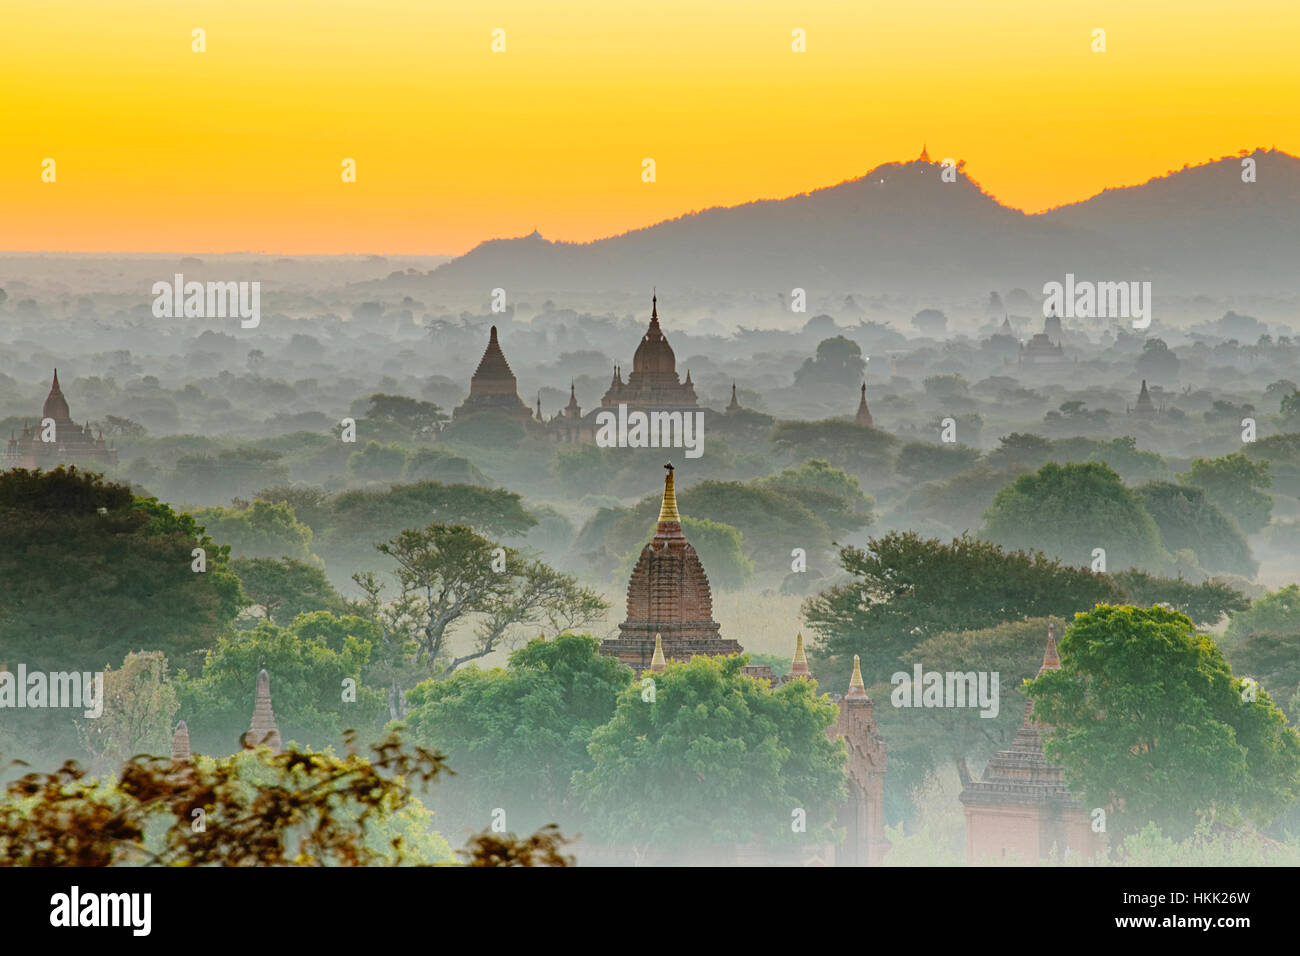 Scenic view of ancient Bagan temple during golden hour - Stock Image